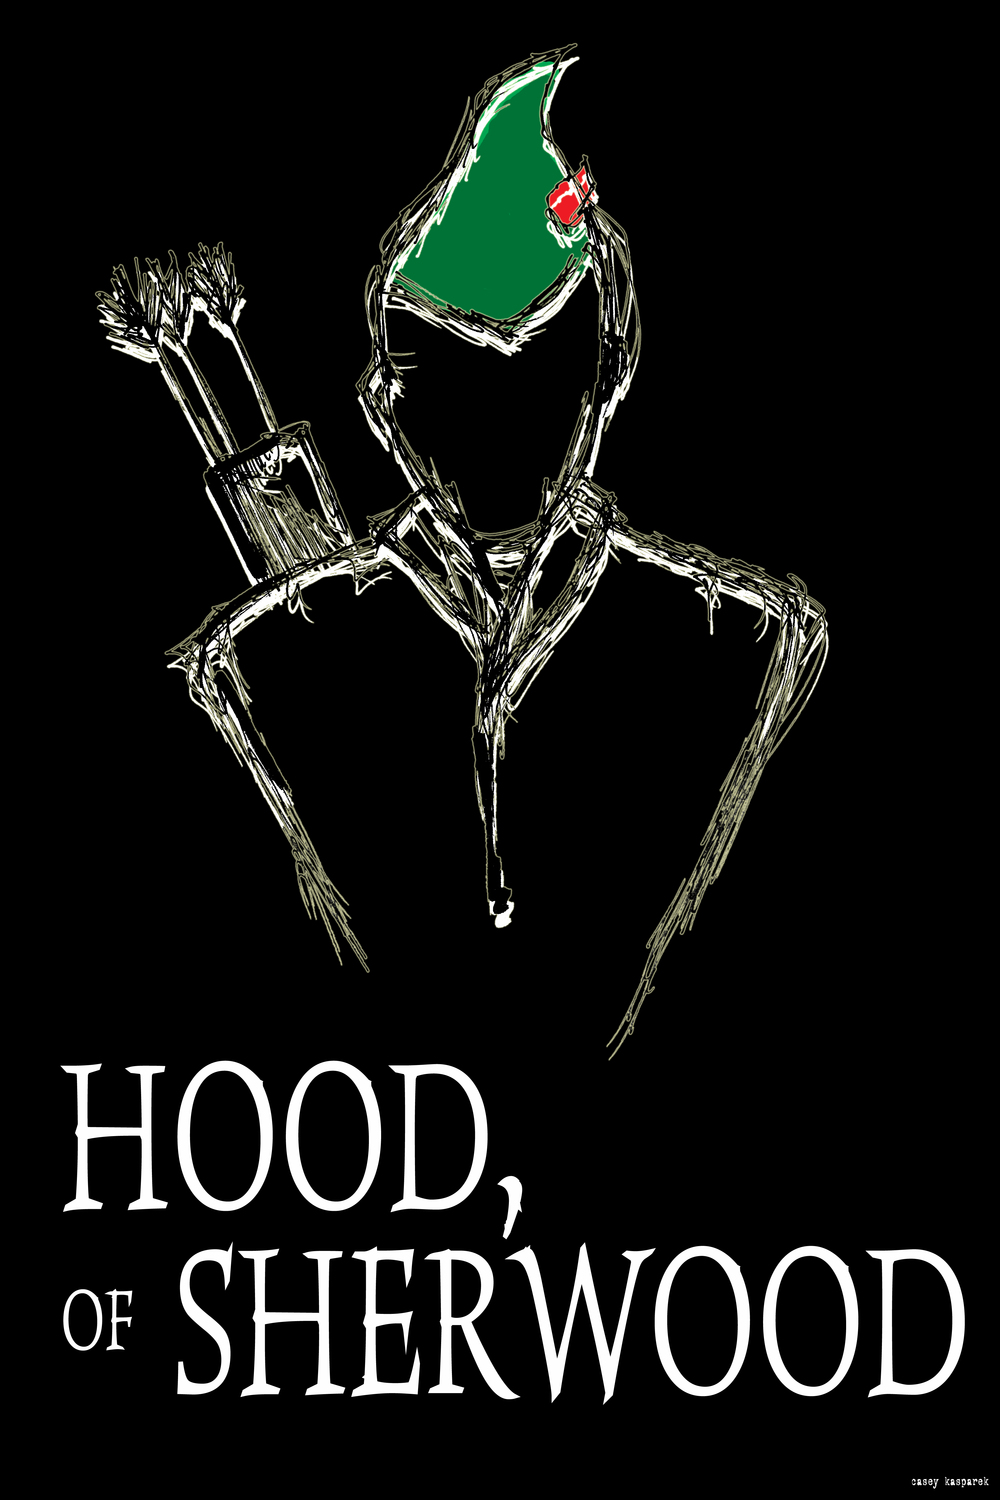 Hood, of Sherwood.jpg